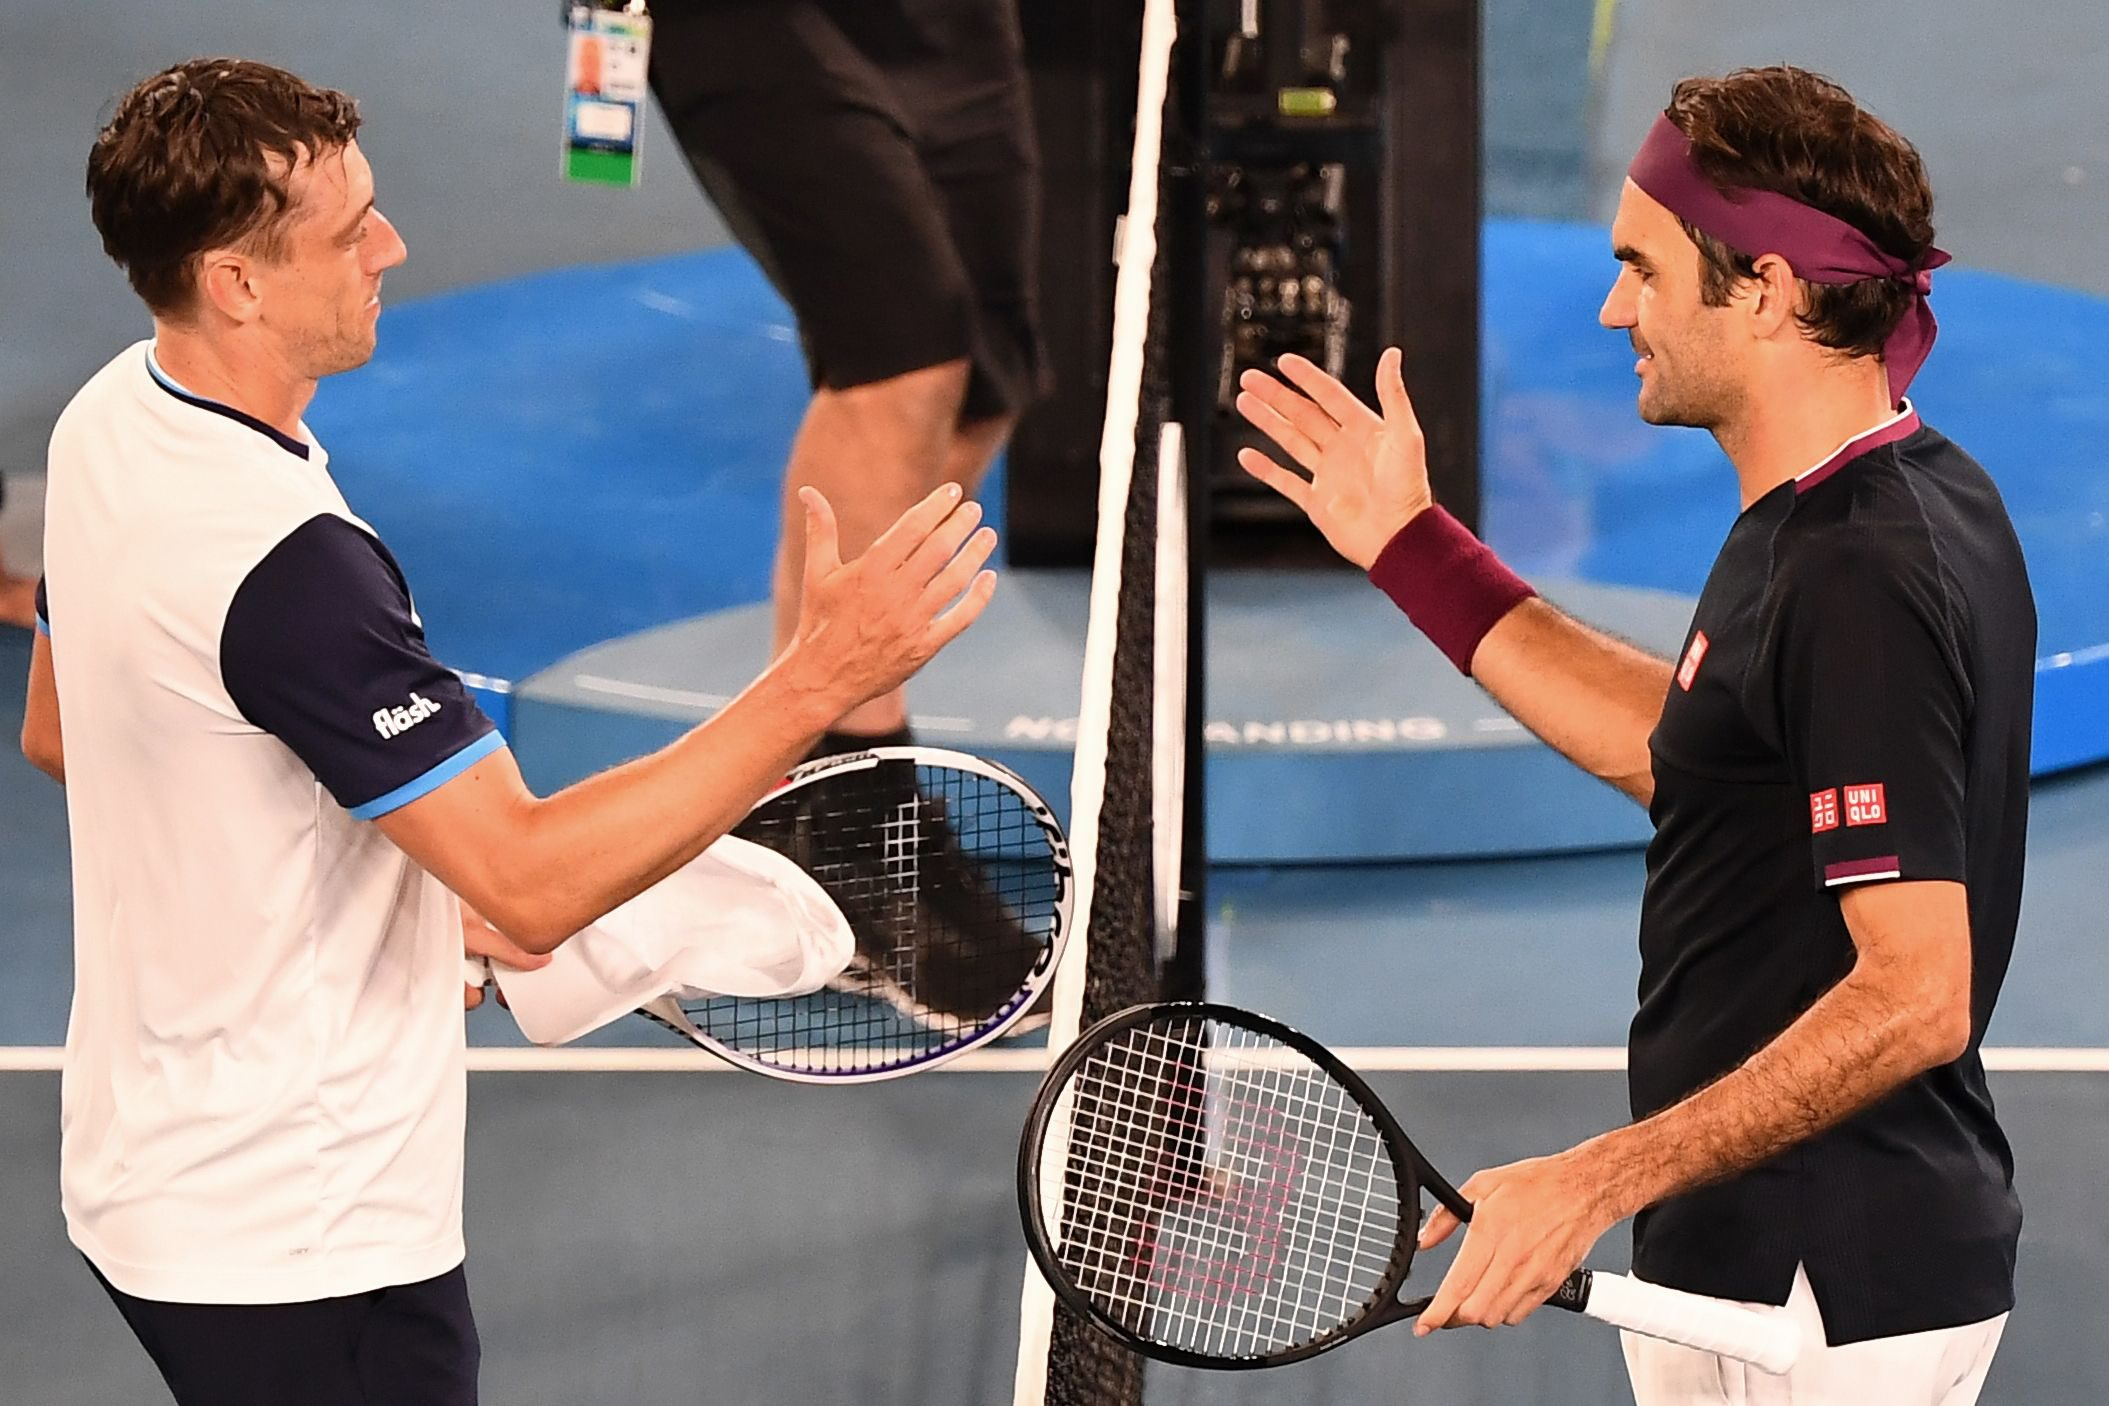 Switzerland's Roger Federer (R) prepares to shake hands with Australia's John Millman after his victory during their men's singles match on day five of the Australian Open tennis tournament in Melbourne on January 24, 2020. (Photo by William WEST / AFP) / IMAGE RESTRICTED TO EDITORIAL USE - STRICTLY NO COMMERCIAL USE